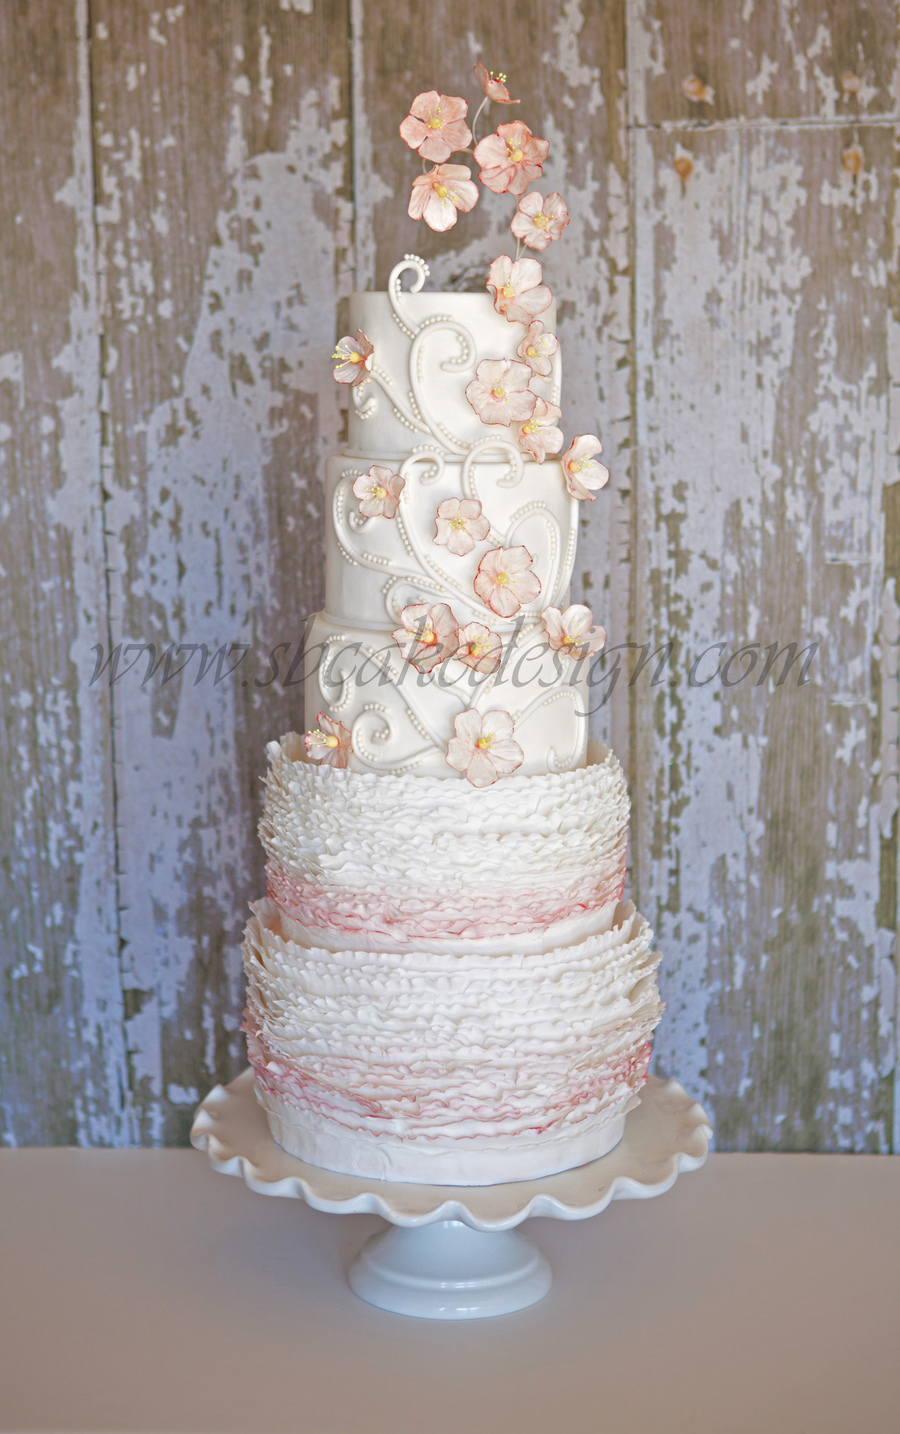 art nouveau wedding cake nouveau wedding cake cakecentral 10858